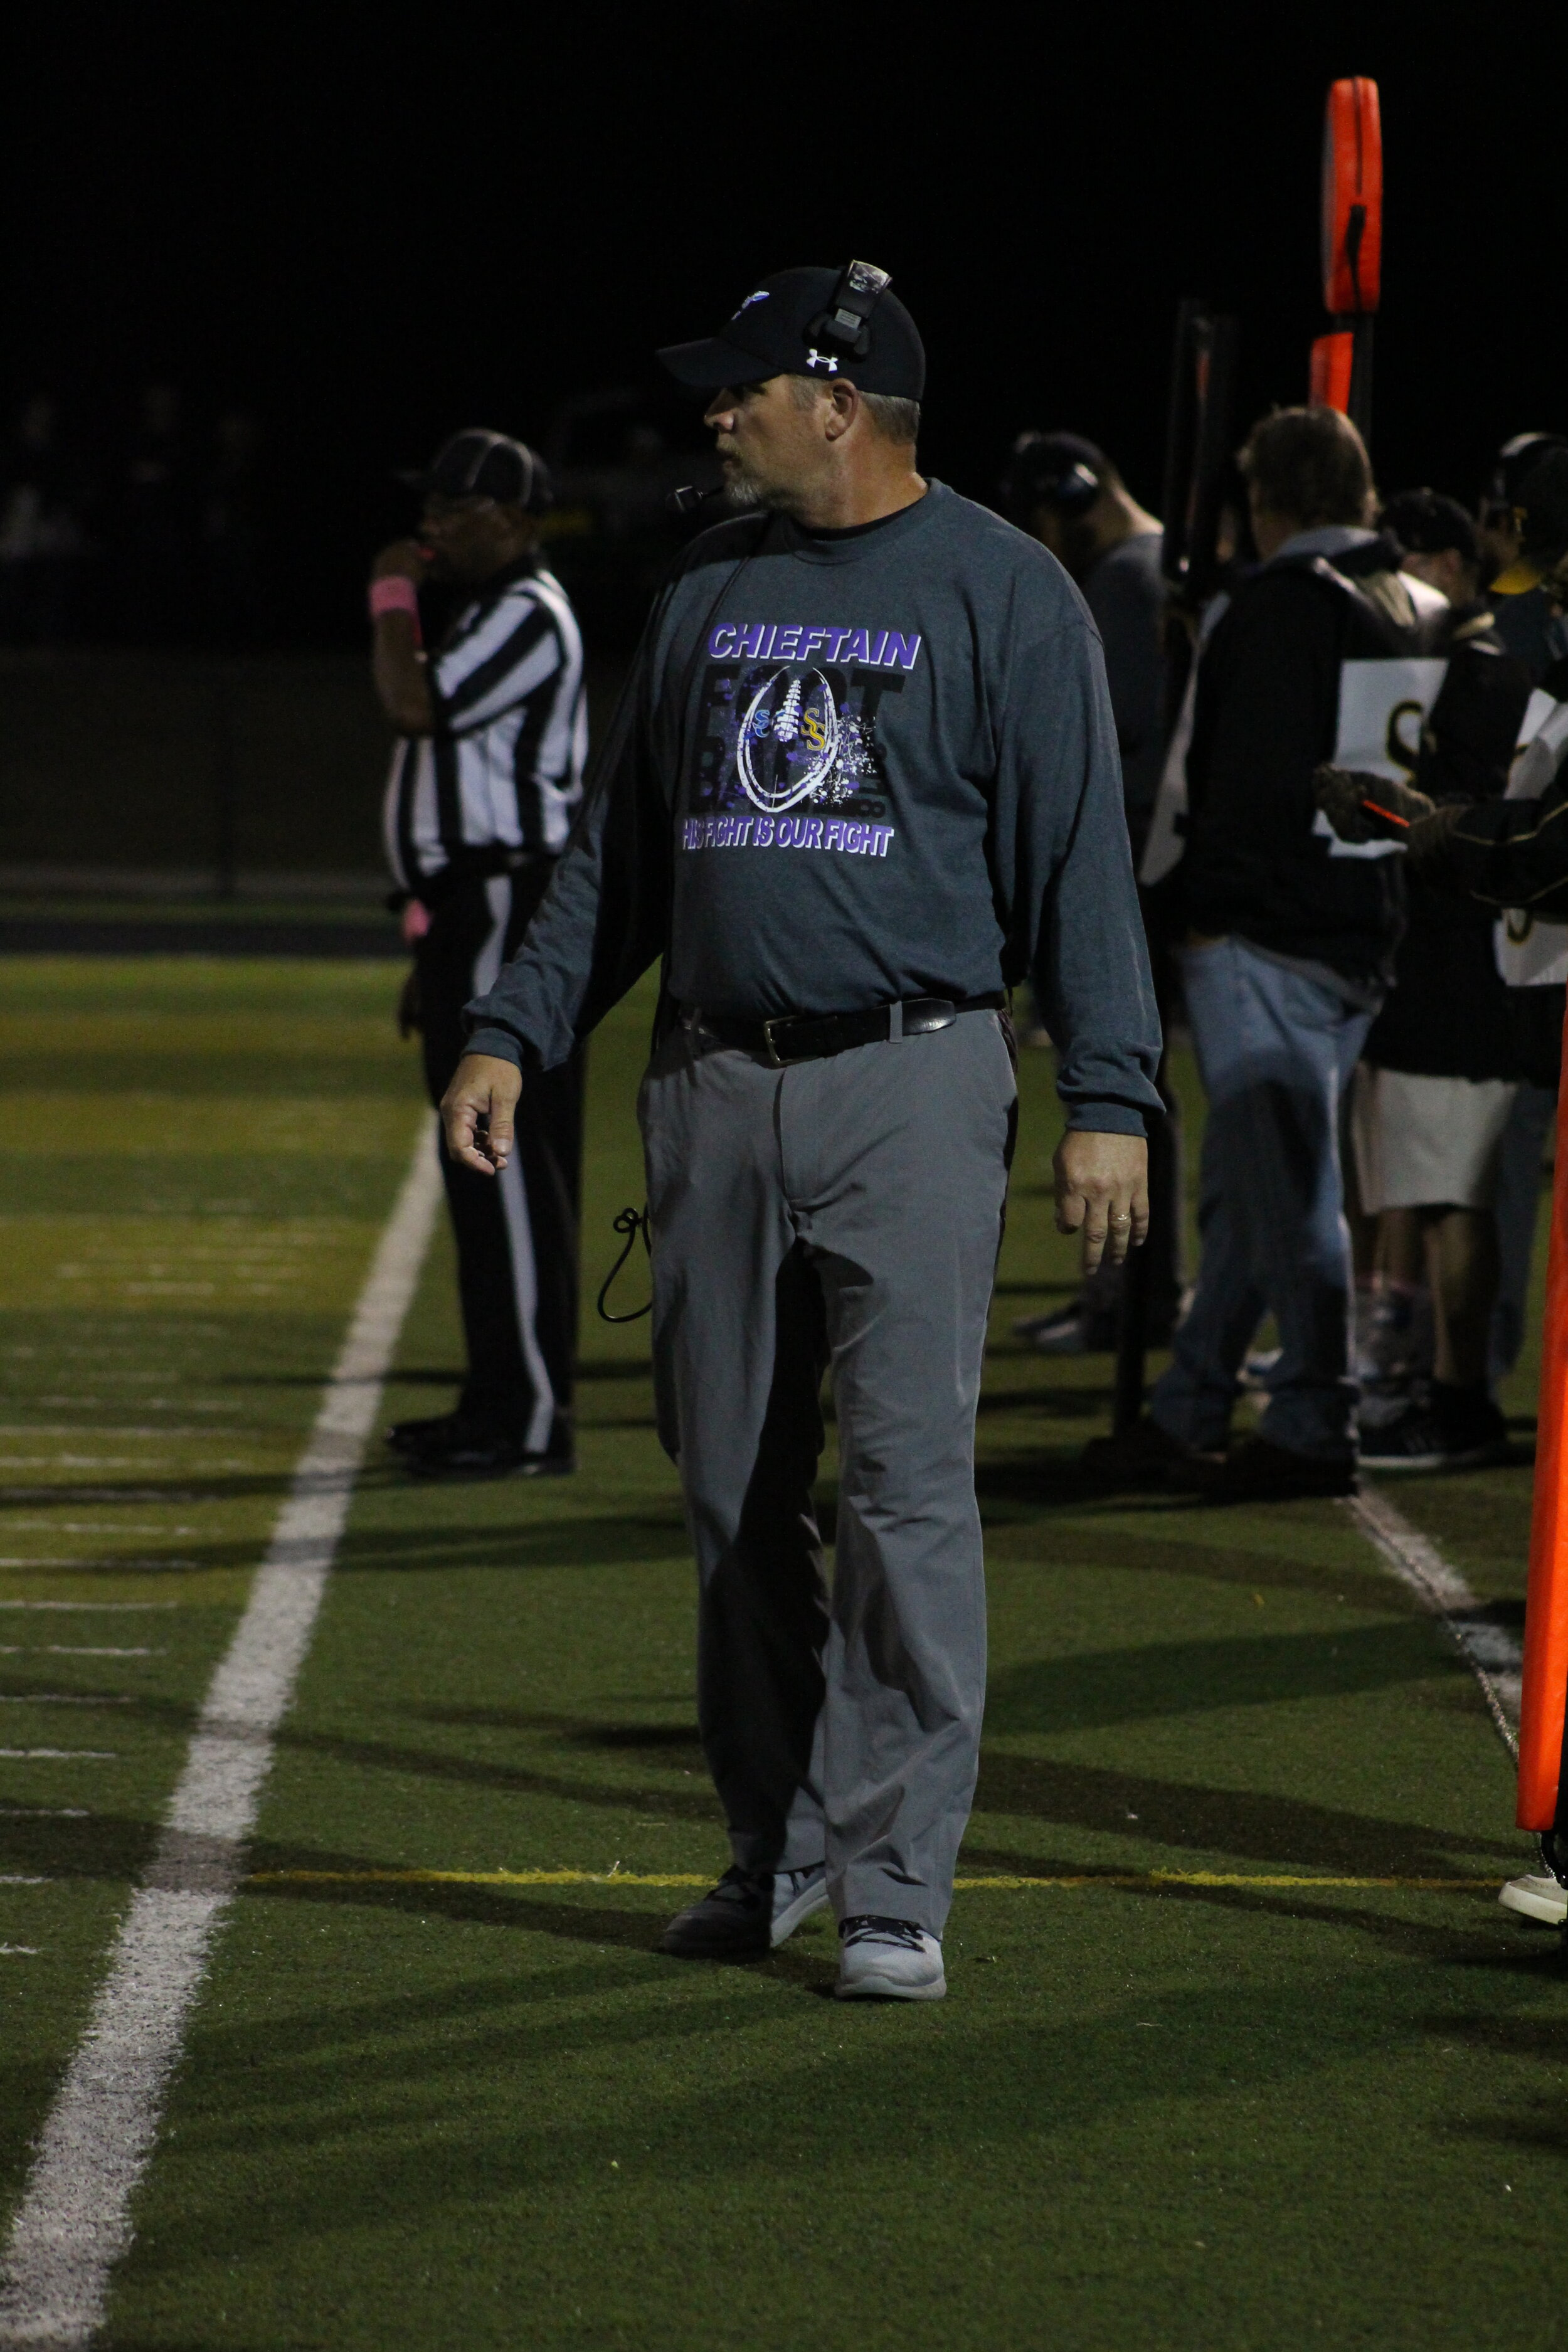 Sapulpa Head Coach Robert Borgstadt picked up his first Highway 97 win since switching sidelines four years ago. He was previously the defensive coordinator at Charles Page.